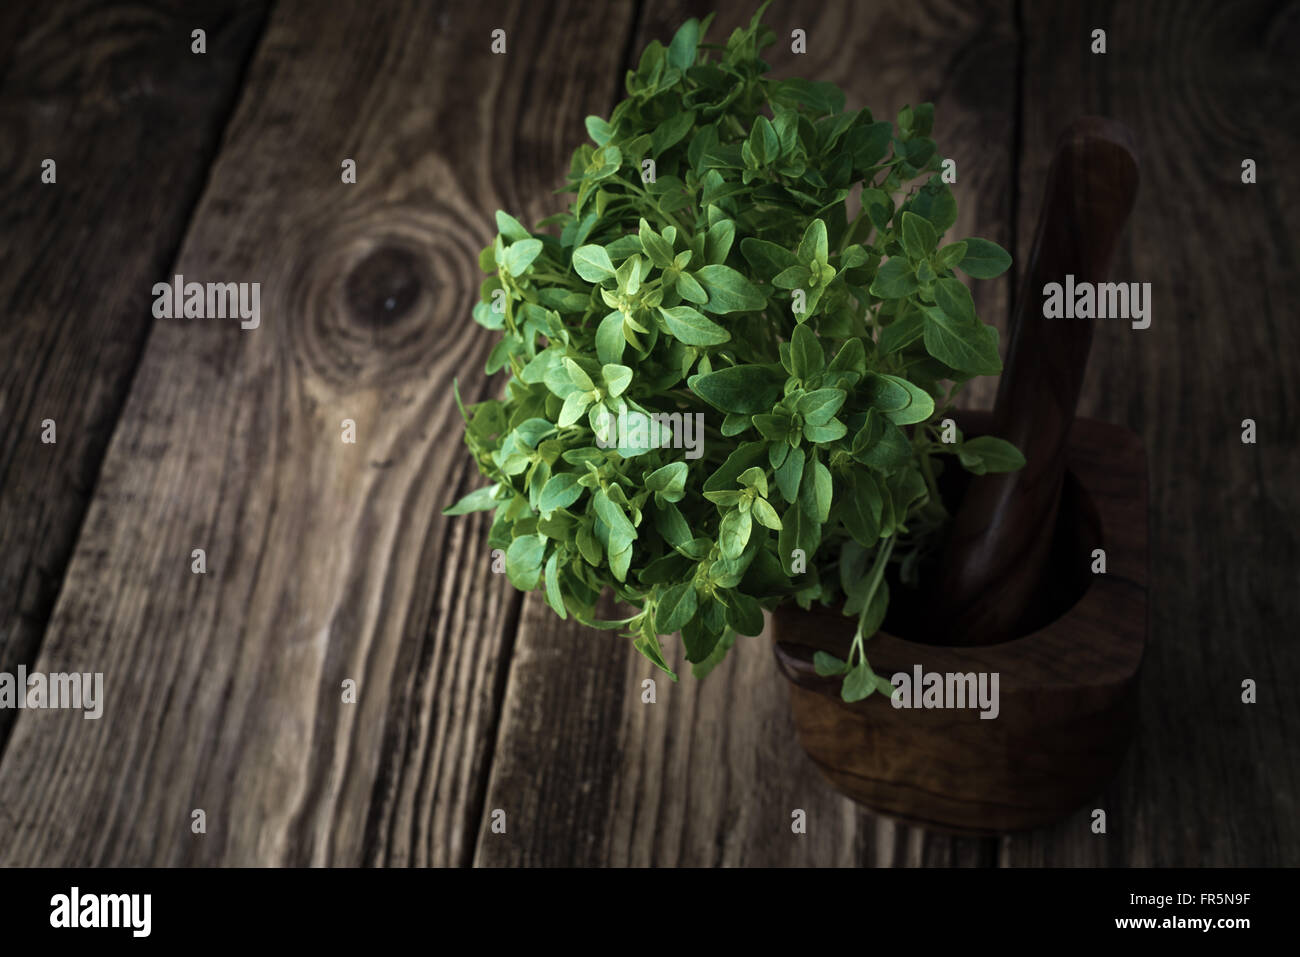 Basil and mortar on old boards horizontal - Stock Image